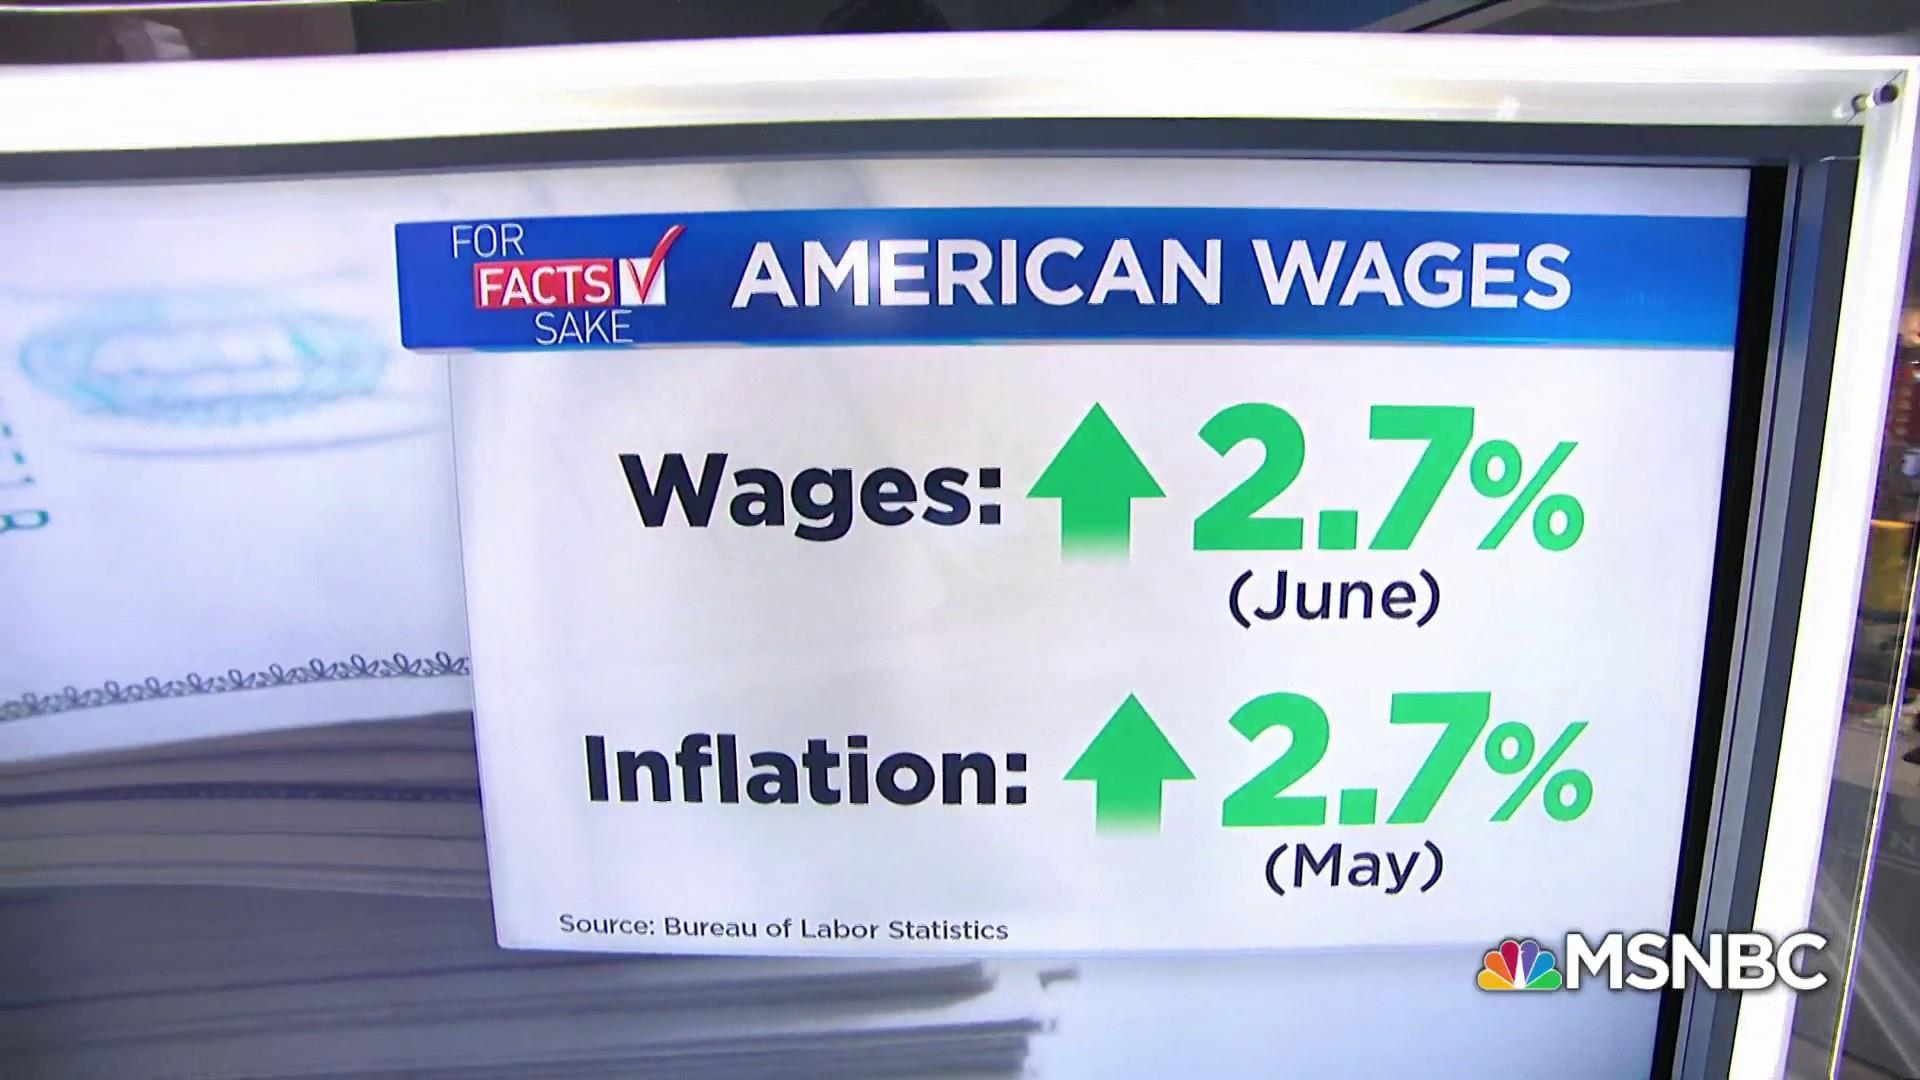 For Fact's Sake: Wage growth needs to outpace inflation rate